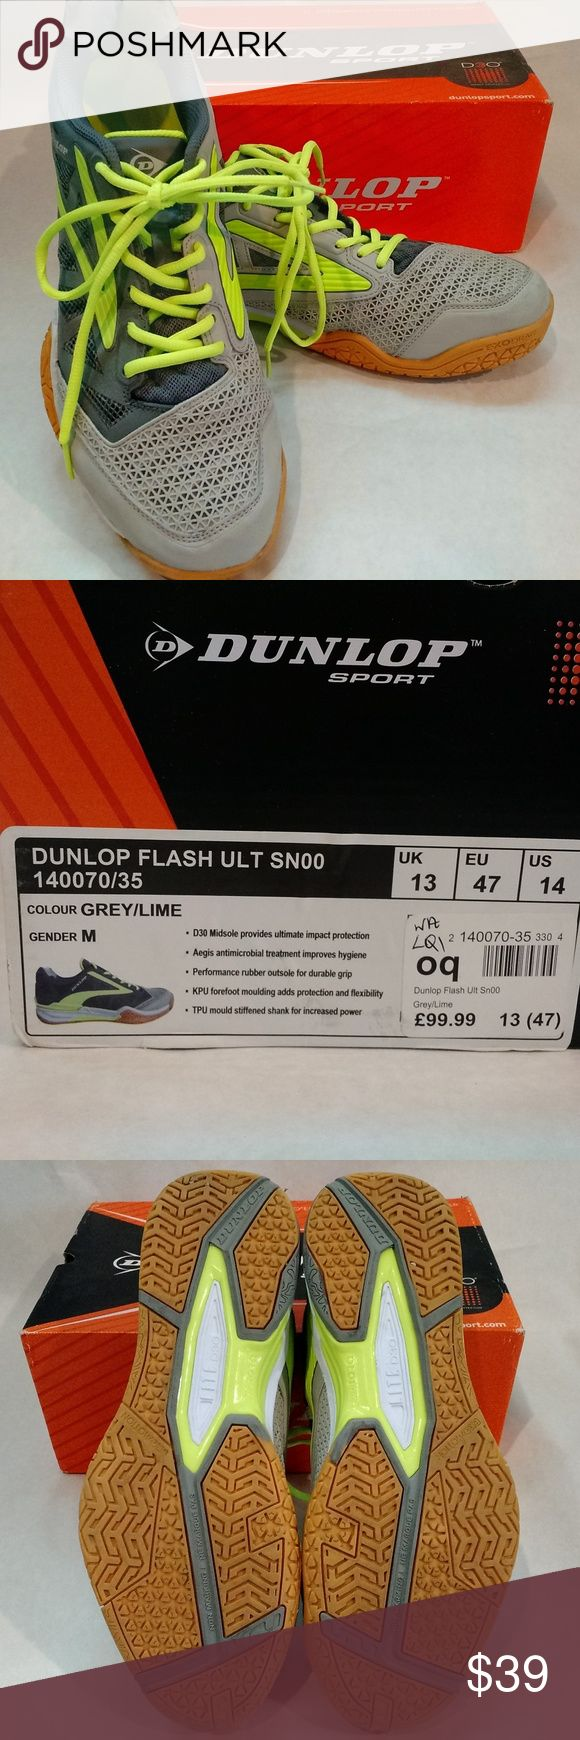 DUNLOP Ultimate Flash Squash Shoes US 14 UK 13 EUC Dunlop Flash Ultimate Squash Shoes LITE with D30 cushioning technology, designed to dissipate impact so you can maintain focus on your game, complete with the latest EXO MOTION non marking sole unit for dependable traction all game long.  > Lace-up > Supportive, shaped heel > Perforated upper > External heel counter > TPU midfoot shank > LITE by D30 Cushioning > Dunlop branding > EXOMOTION non marking sole unit > Upper: synthetic/textile…